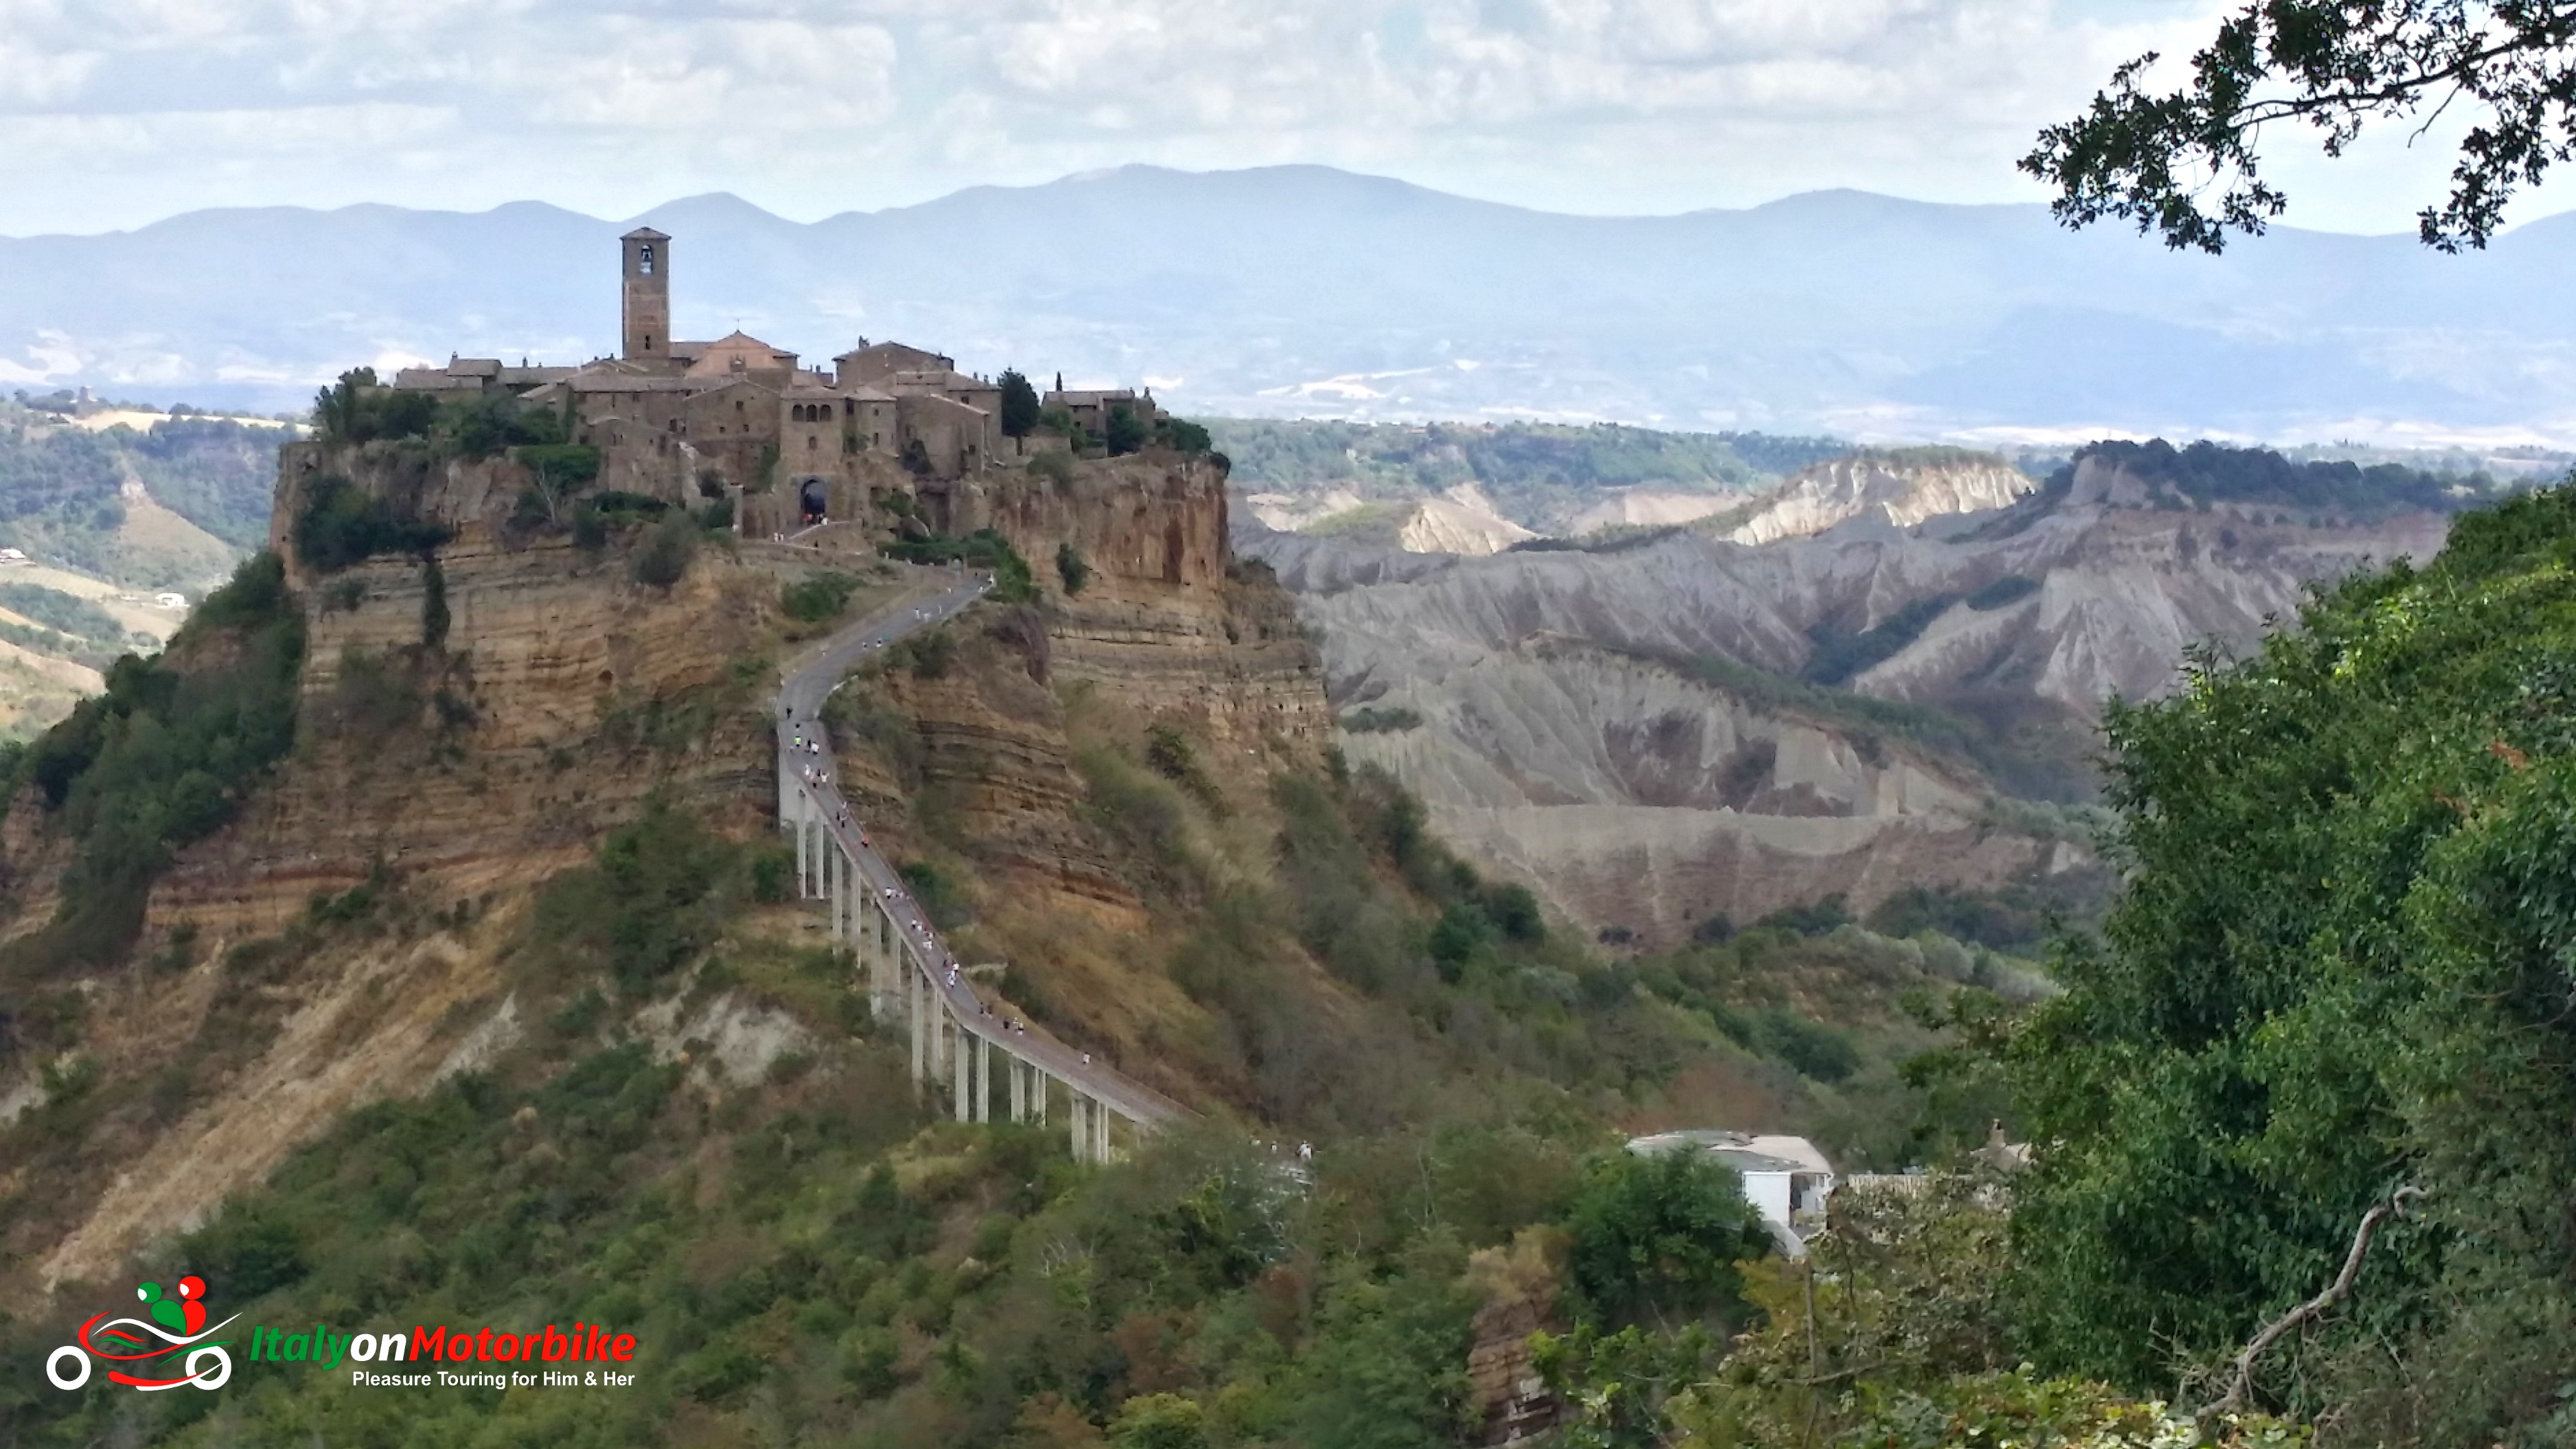 Maximum riding pleasure roadtrip best riding roads touring in italy riding with a local